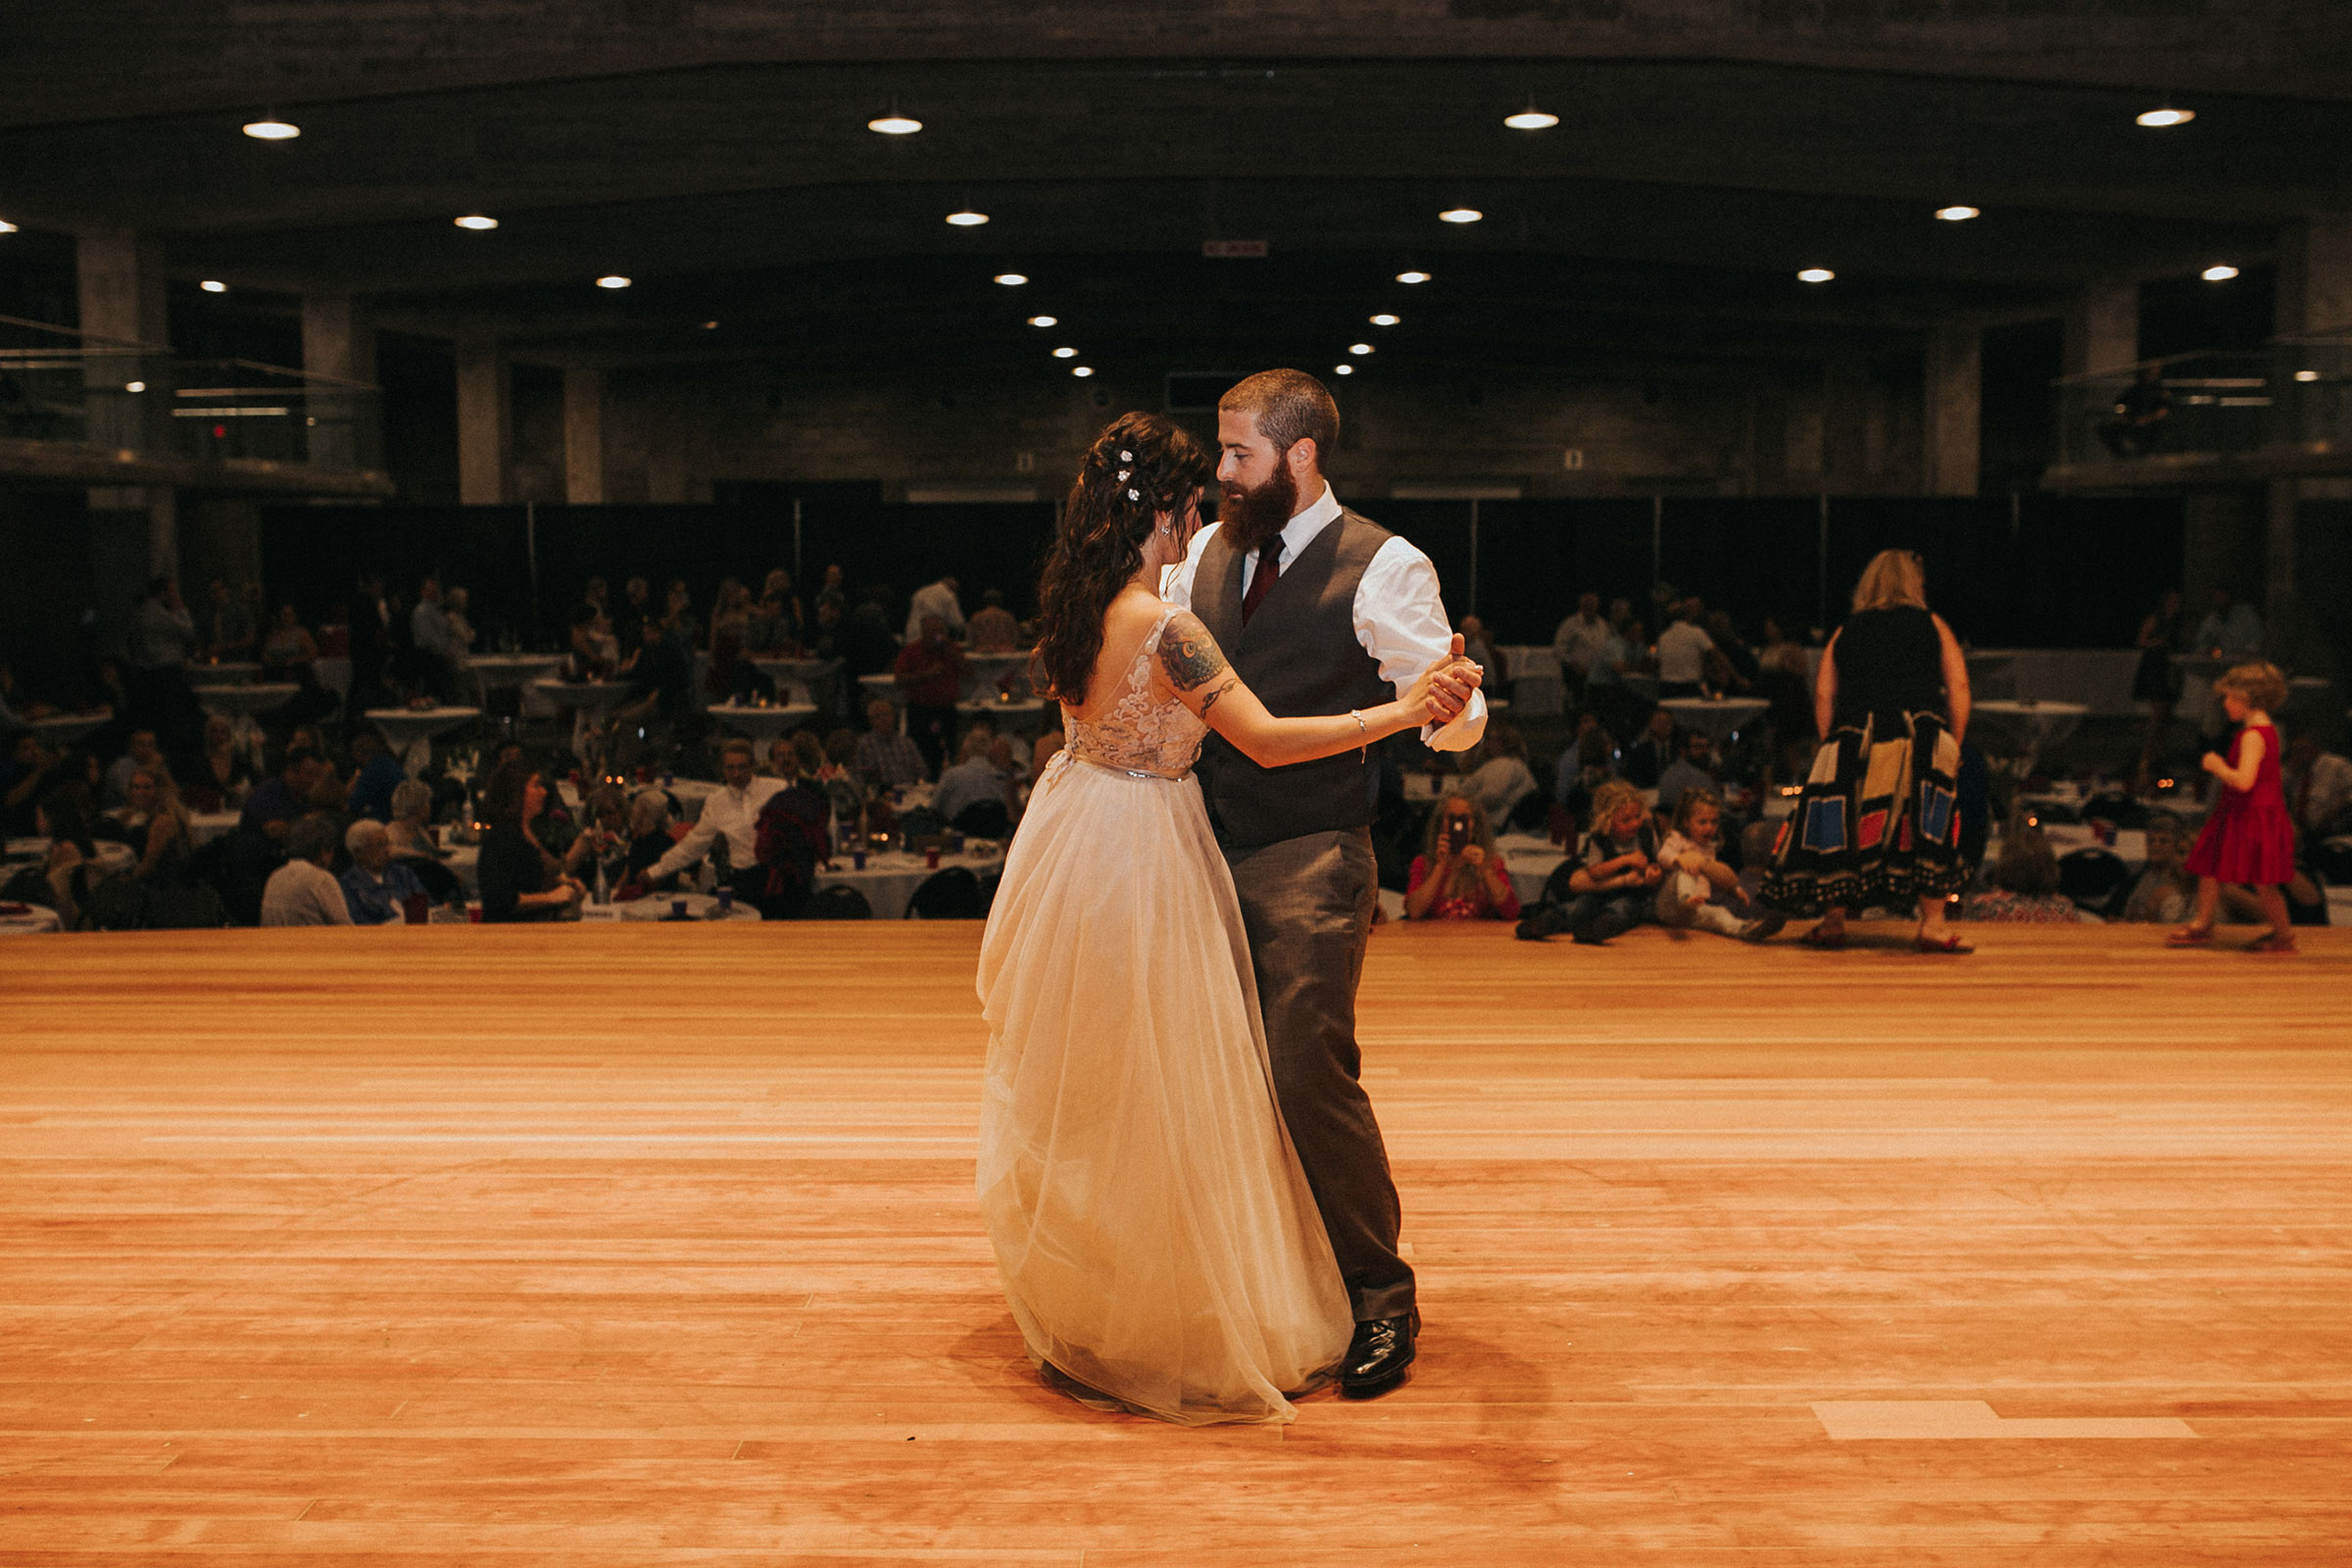 bride-groom-first-dance-at-reception-pella-plaza-desmoines-iowa-raelyn-ramey-photography.jpg